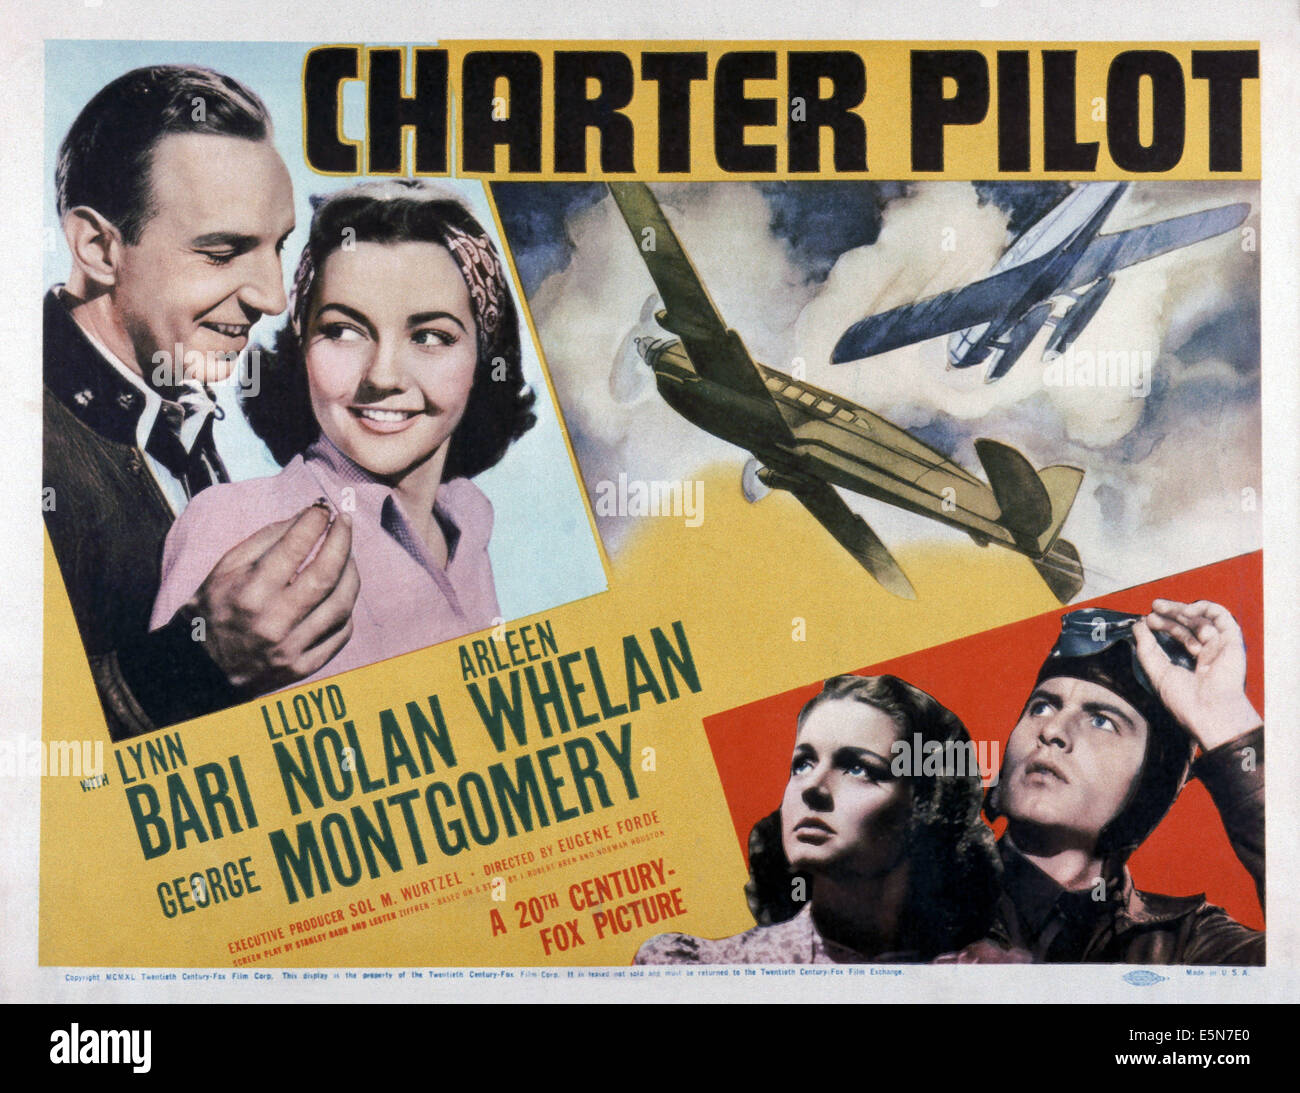 Image result for charter pilot movie